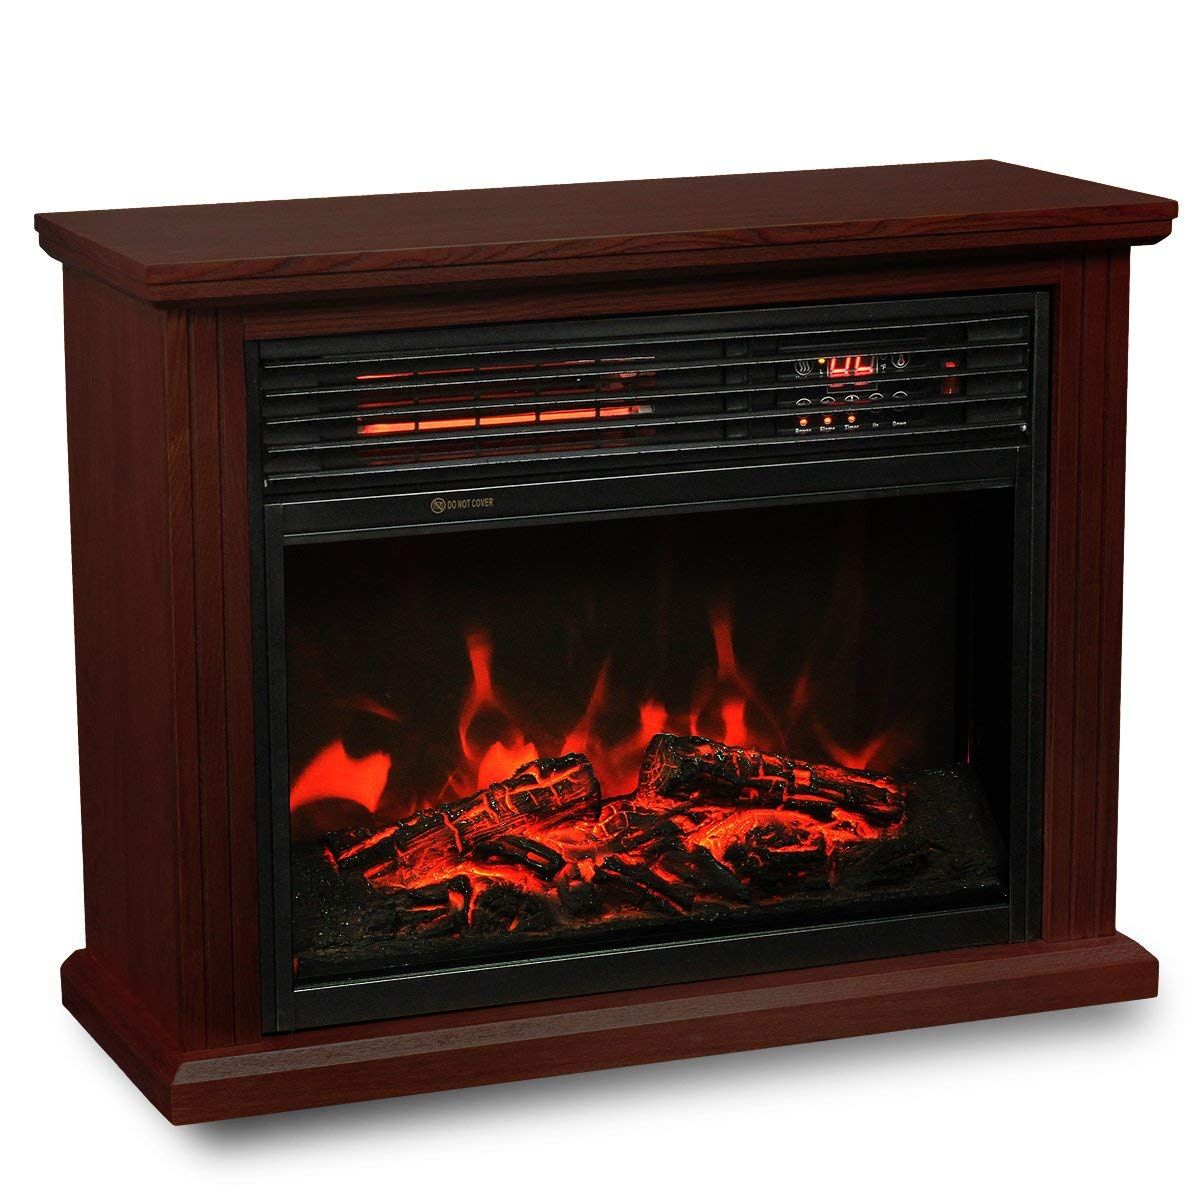 Peachy Top 10 Best Electric Fireplace Insert Review Top 10 Best Home Interior And Landscaping Ologienasavecom